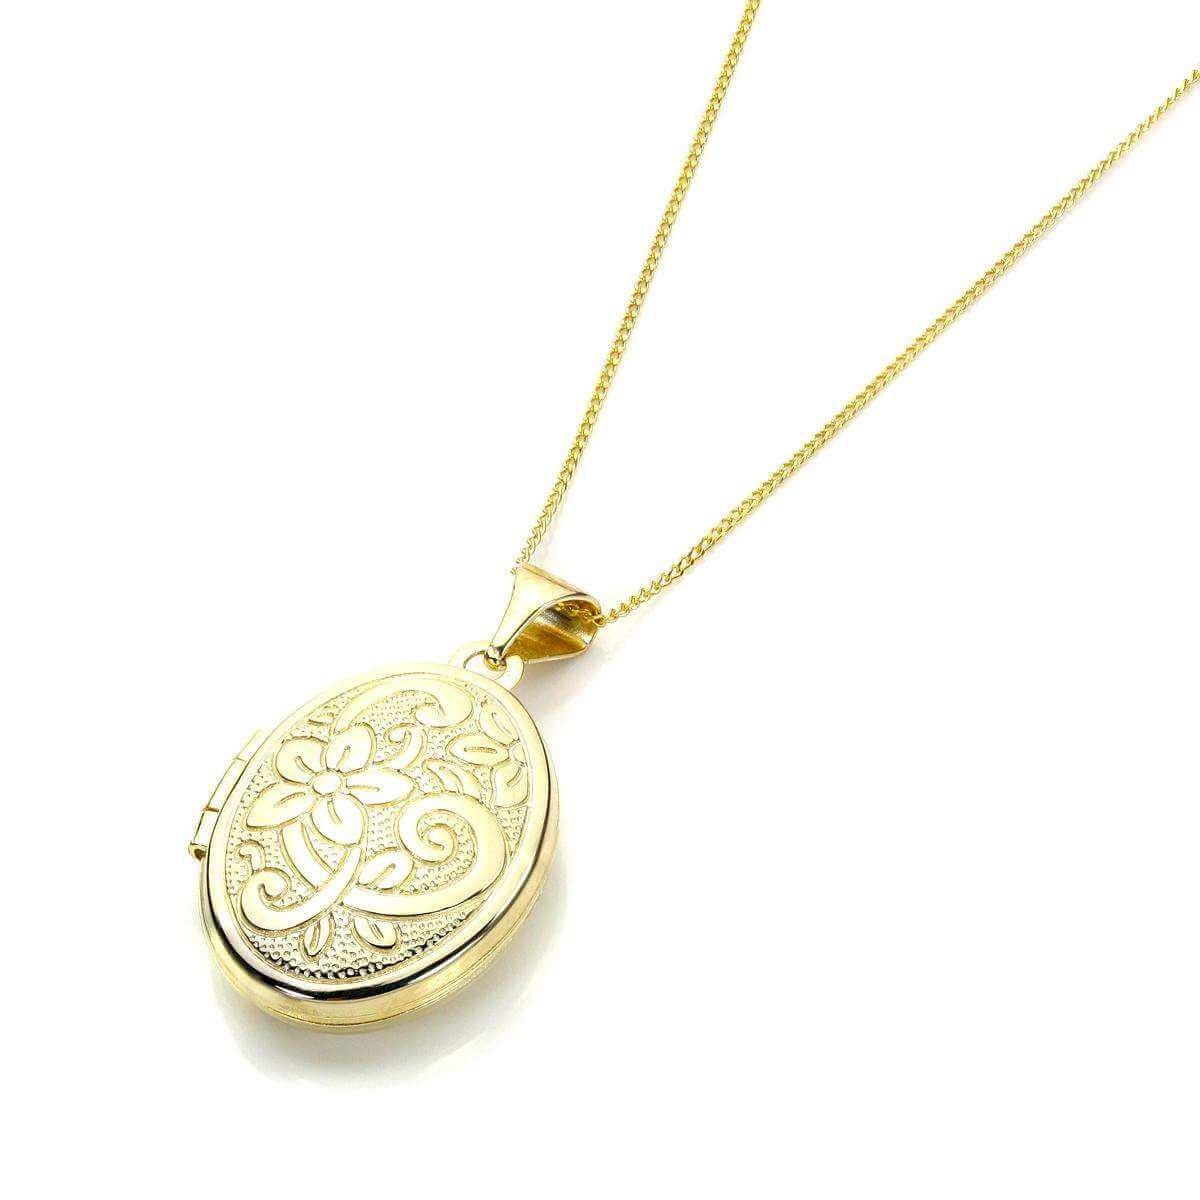 9ct Yellow Gold Floral Engraved Oval Locket